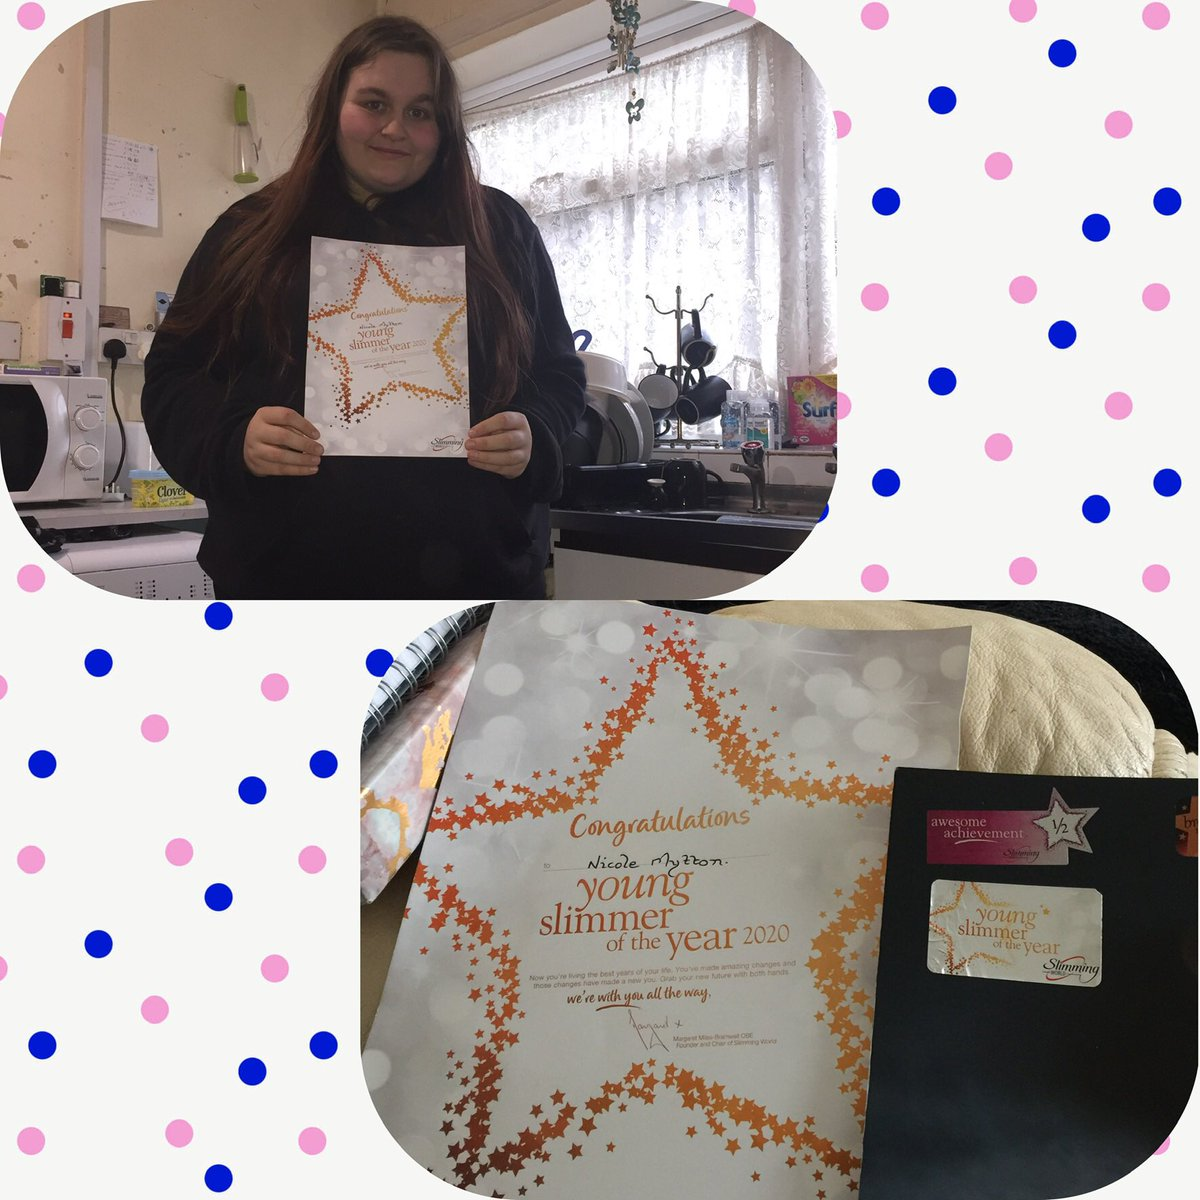 Young Slimmer of the Year 2020 award @SlimmingWorld #slimmingworld #youngslimmeroftheyear2020 #awards pic.twitter.com/BCyBNufT6X